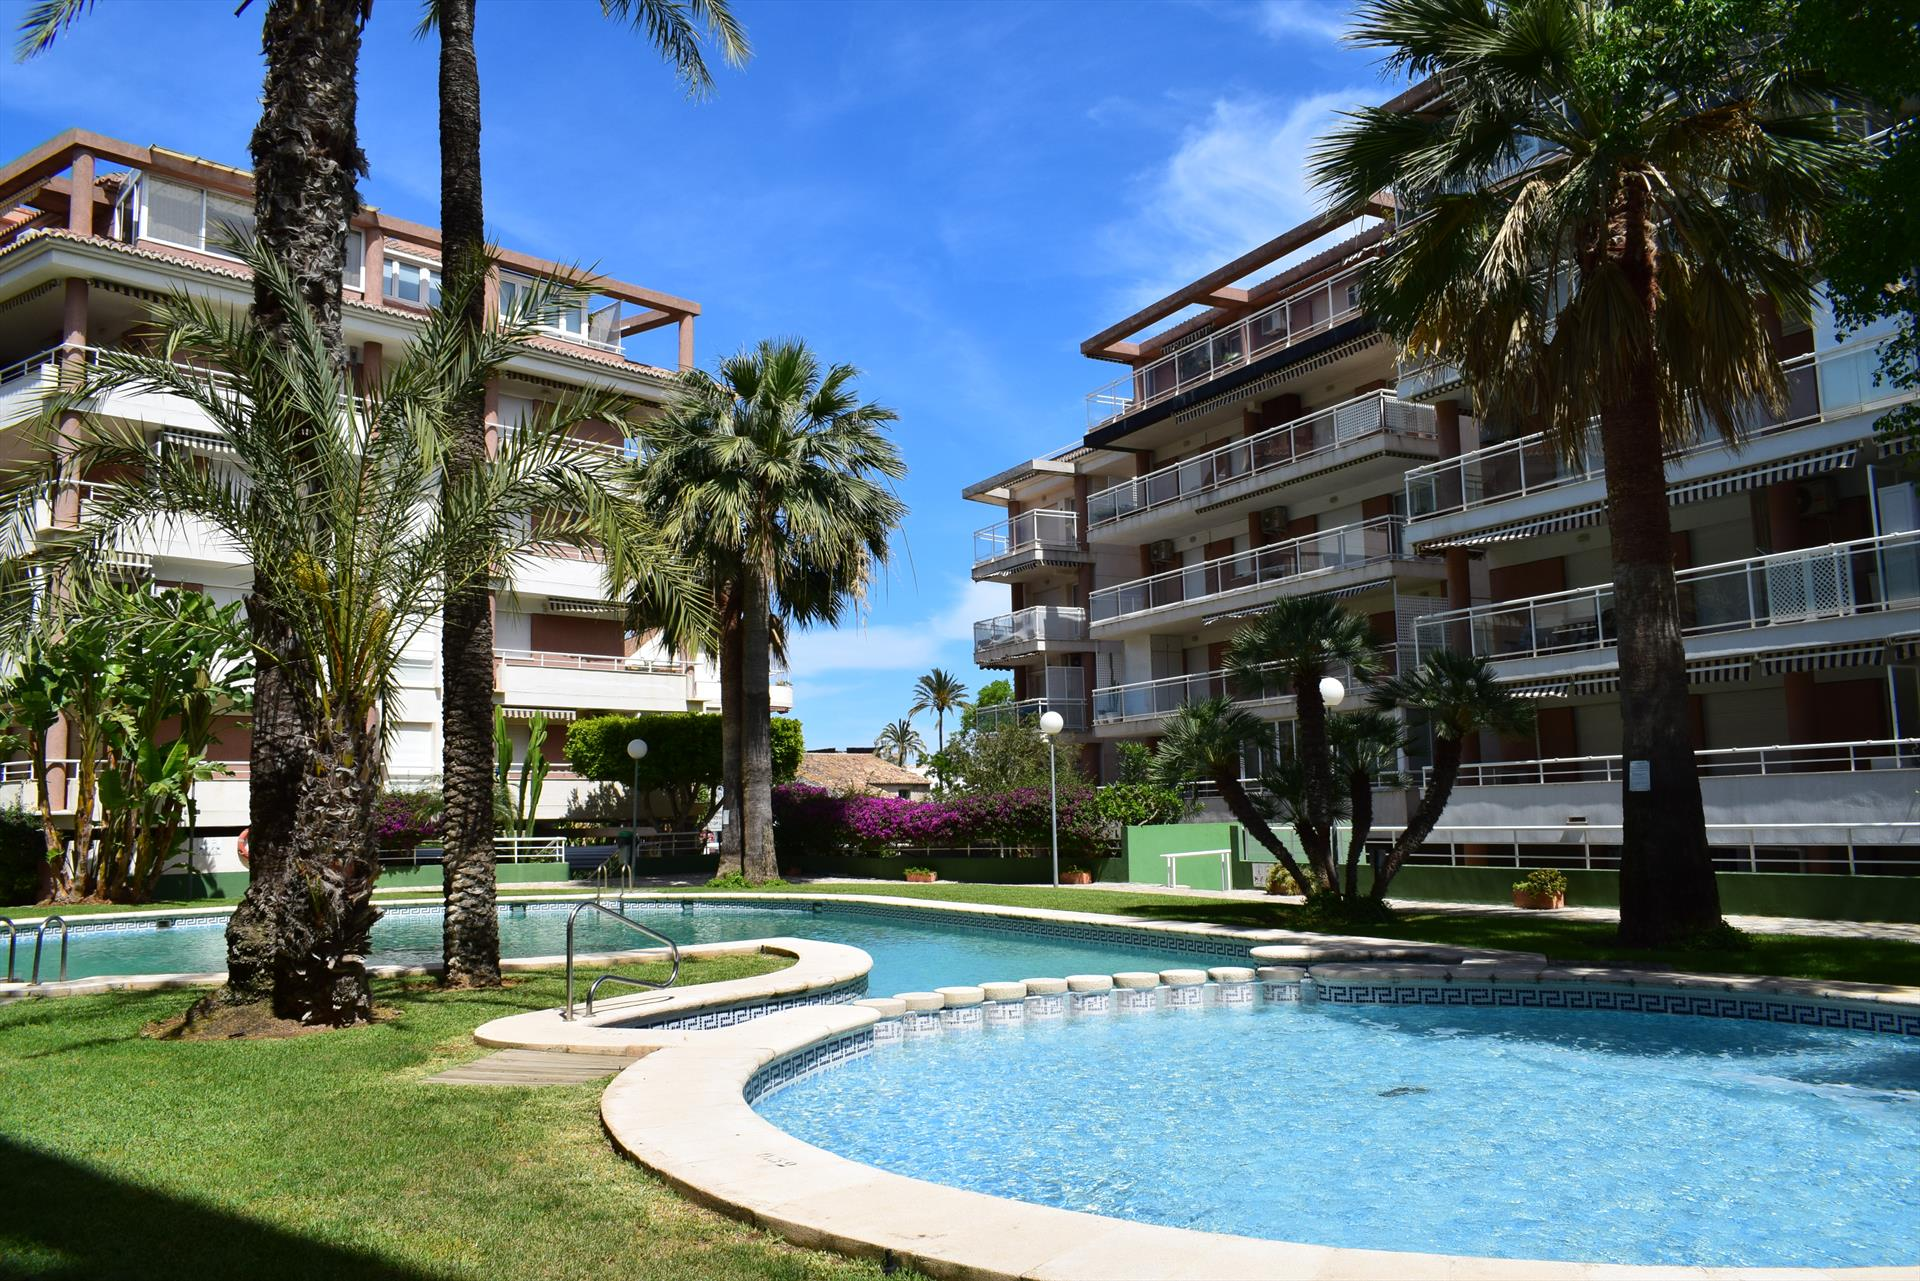 AP1112 Centro de Dénia con Piscina, Classic and cheerful apartment in Denia, on the Costa Blanca, Spain  with communal pool for 4 persons.....